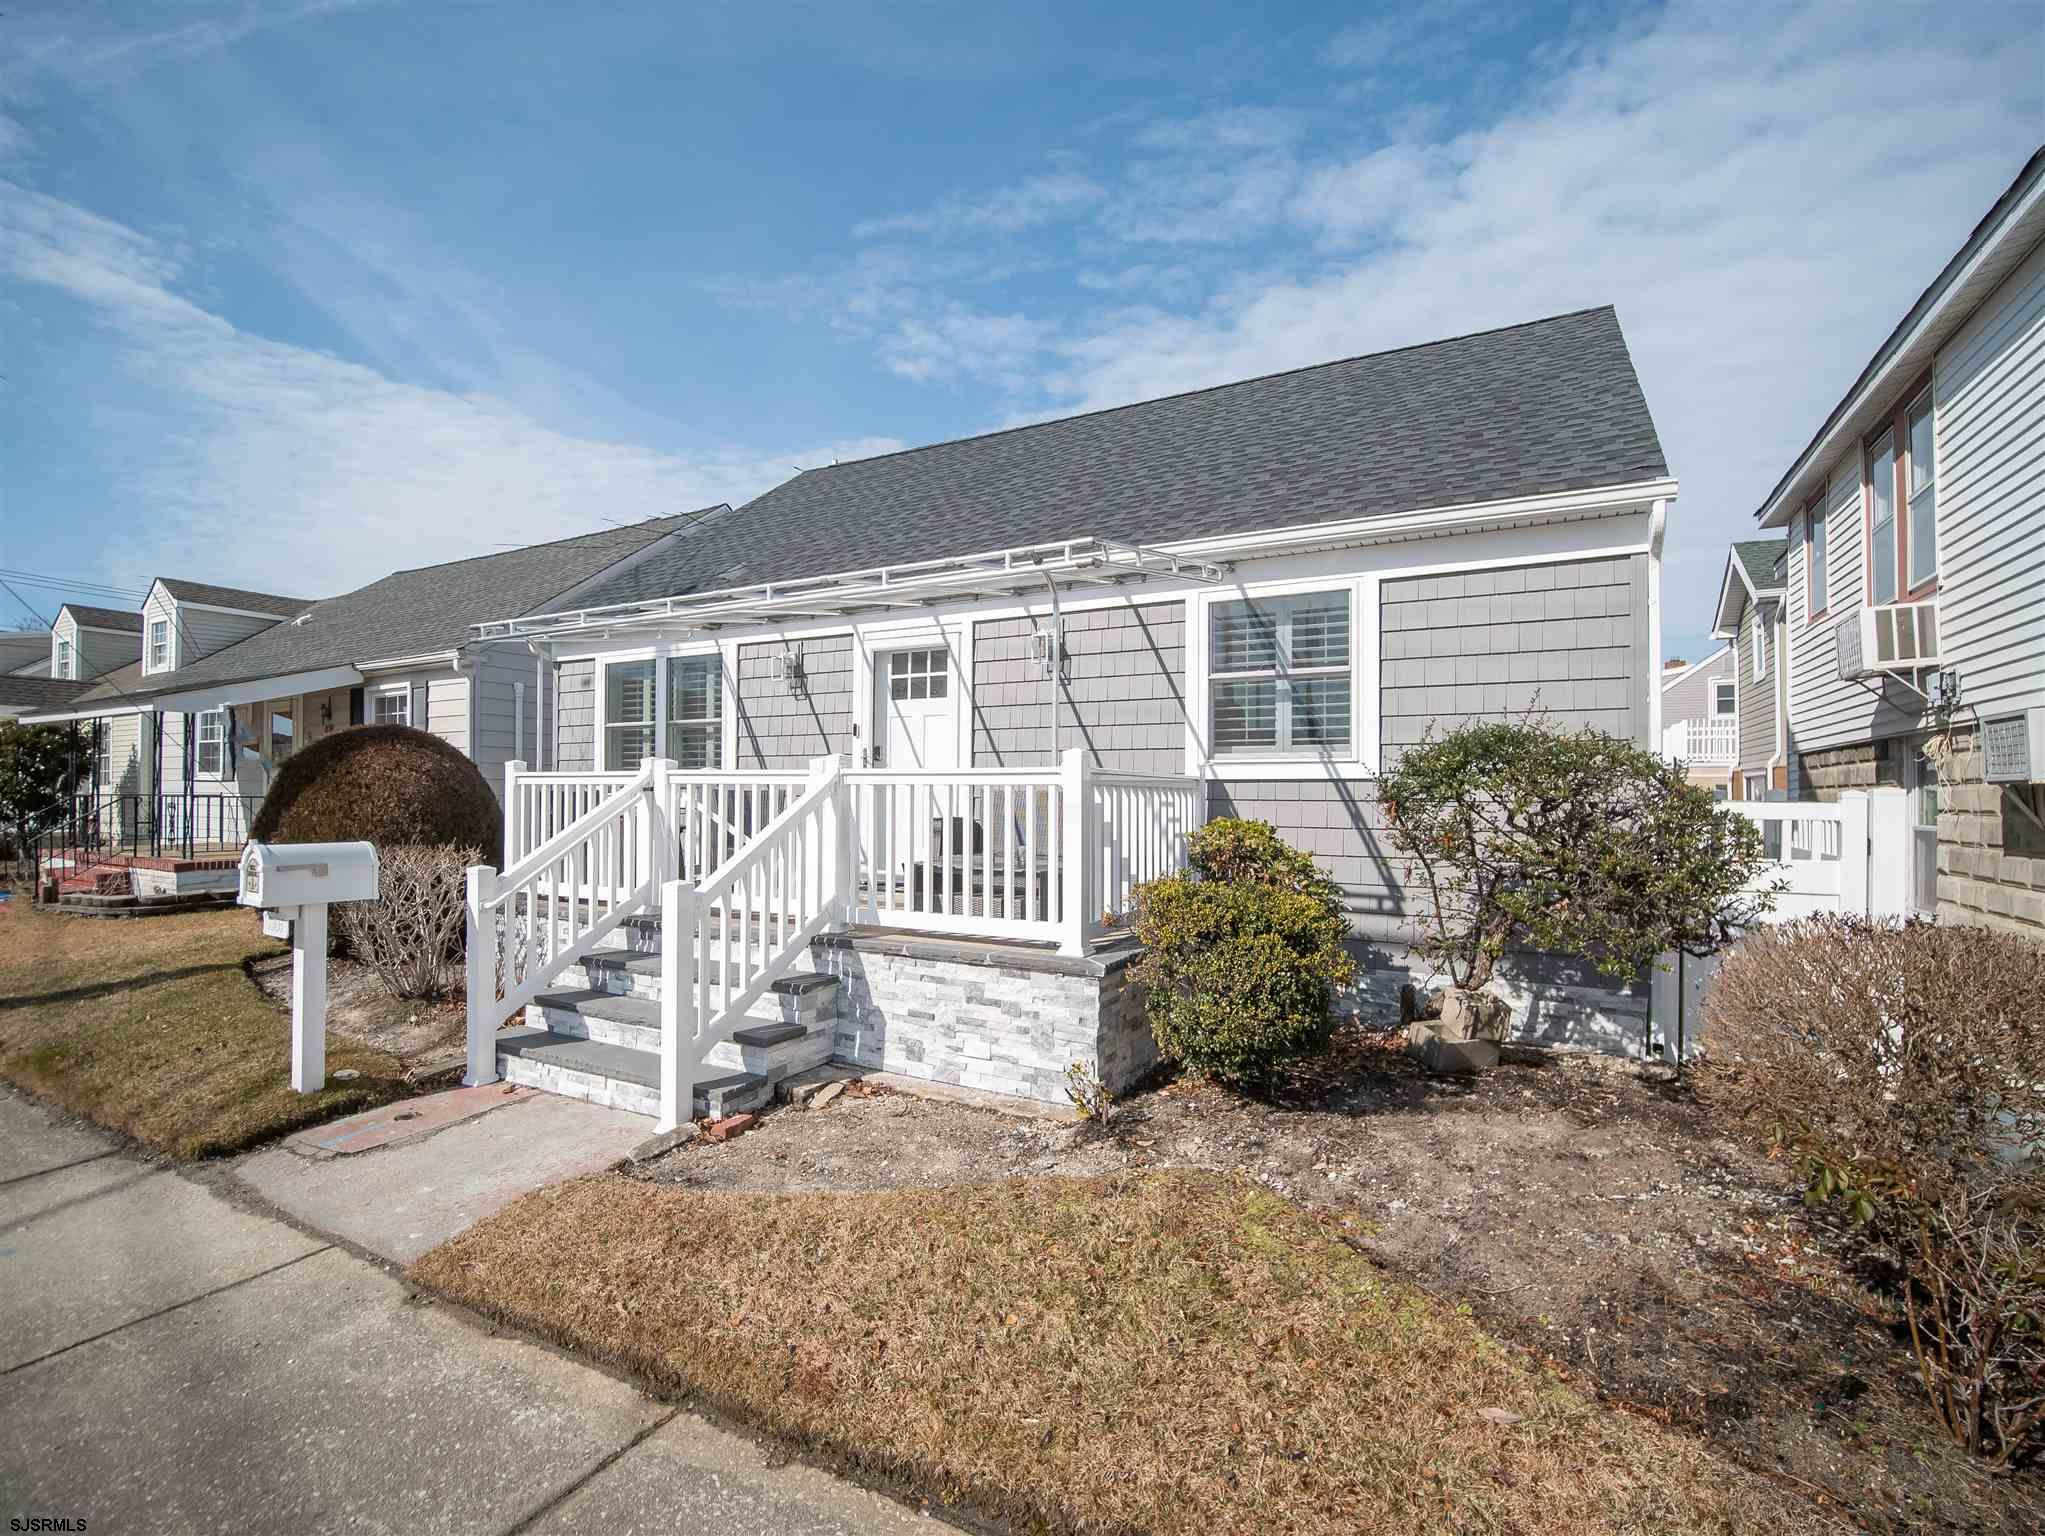 This totally renovated 3 BR 2 BA home makes for the perfect summer escape! Enter into the bright ope